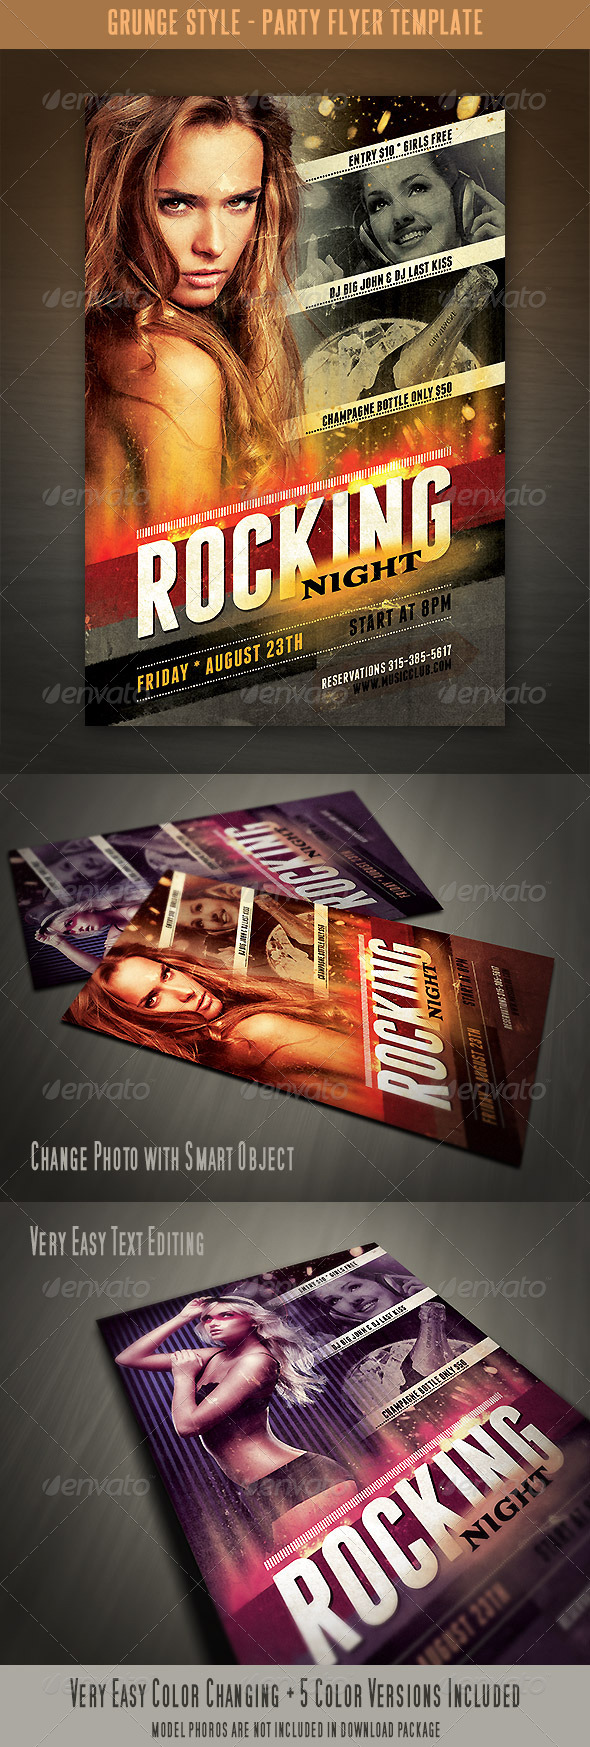 Grunge Style Flyer Template - Clubs & Parties Events